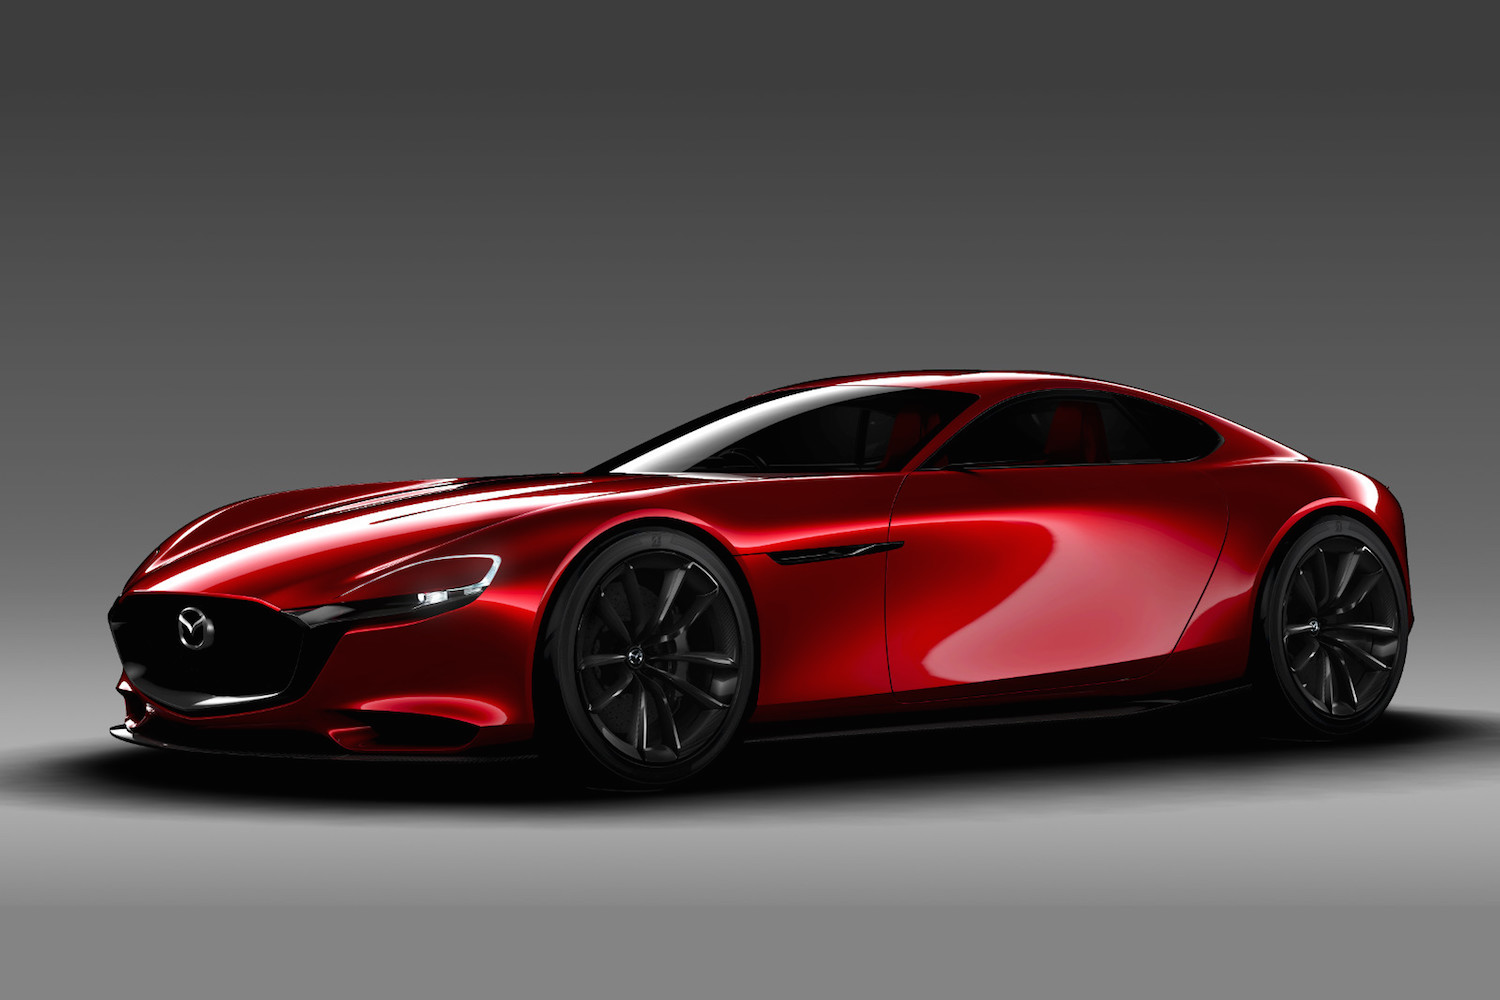 Mazda's RX Revival Sports Car Will Pack Turbocharged